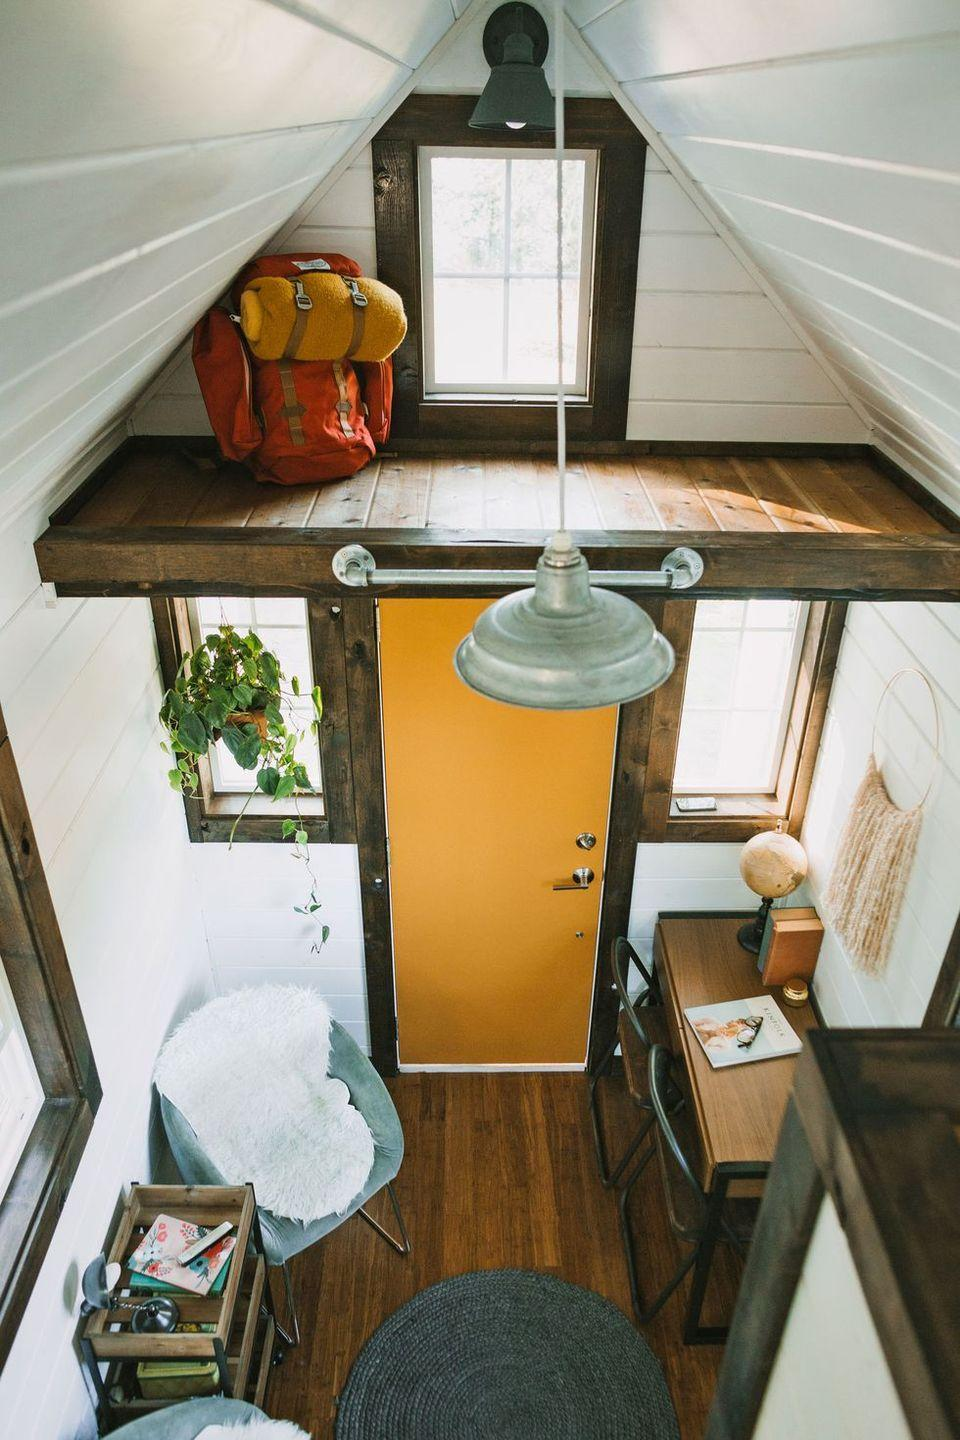 <p> Michelle and Tyson Spiess used top-of-the-line materials, fixtures, and finishes to create their space that doesn't skimp on style or quality.</p>